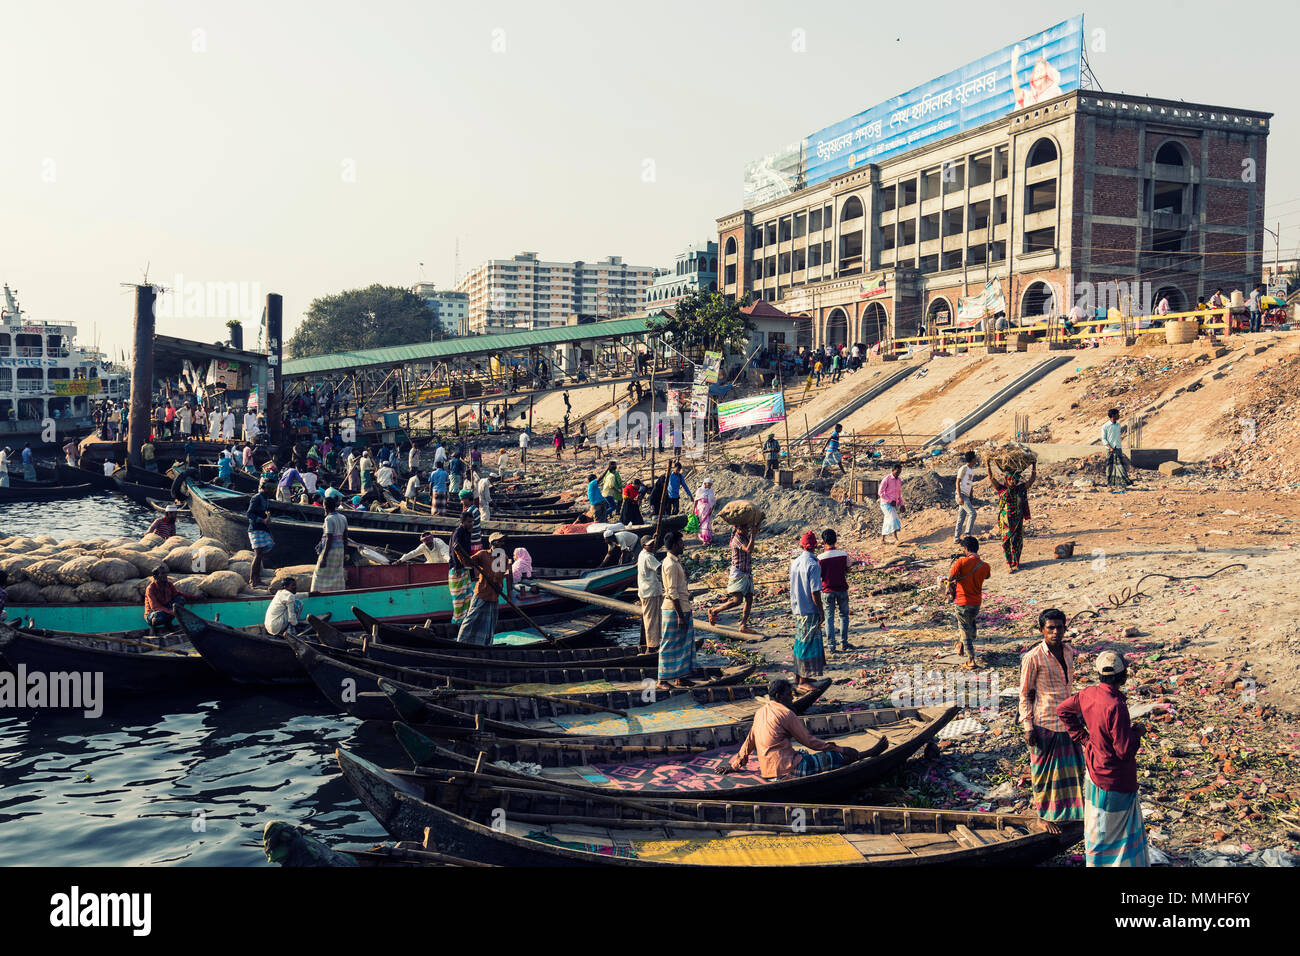 Dhaka, Bangladesh, February 24 2017: Sadarghat terminal with wooden boats and ferries in the background at the Buriganga River in Dhaka Bangladesh (Vi - Stock Image